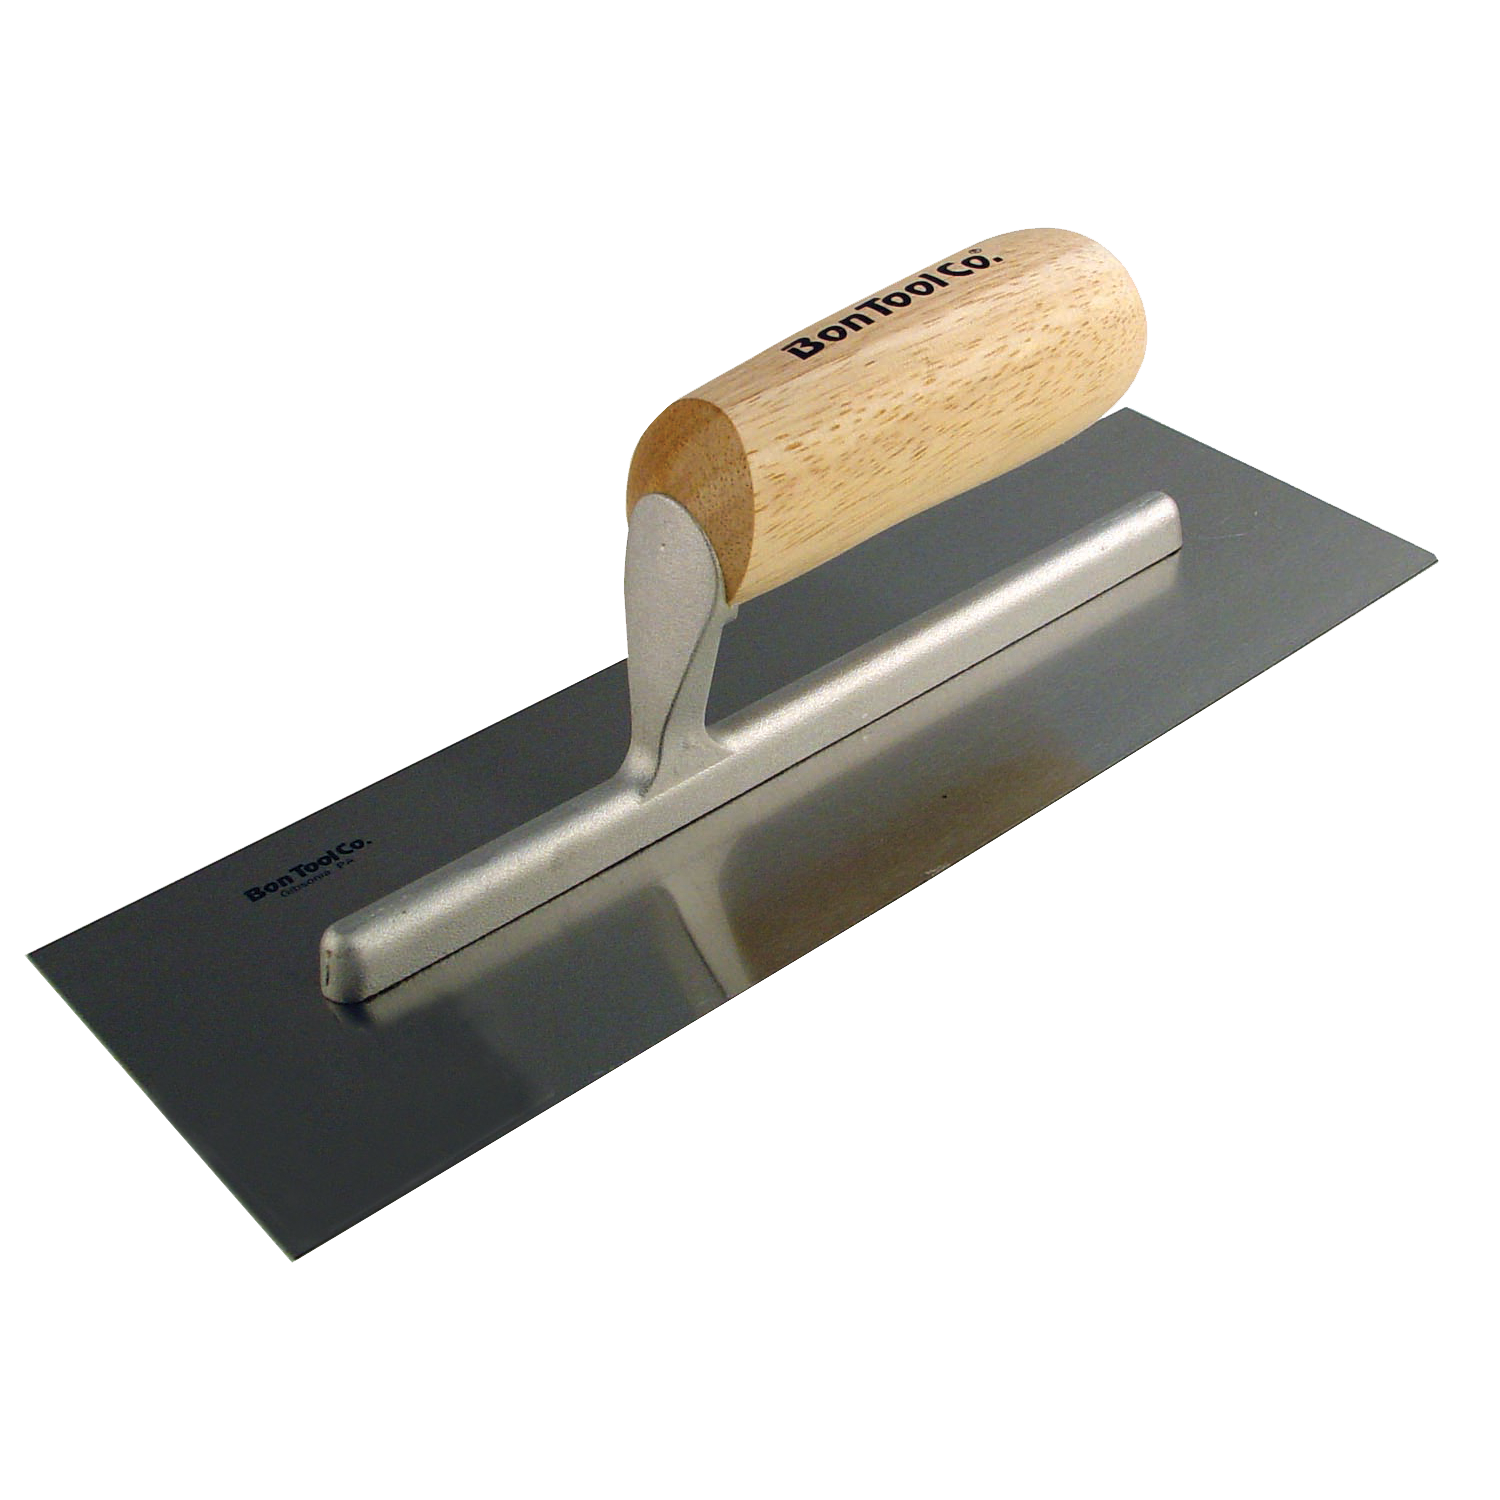 Bon 82-291 Concrete Trowel - Steel 14 inch X 4 inch with Wooden Handle